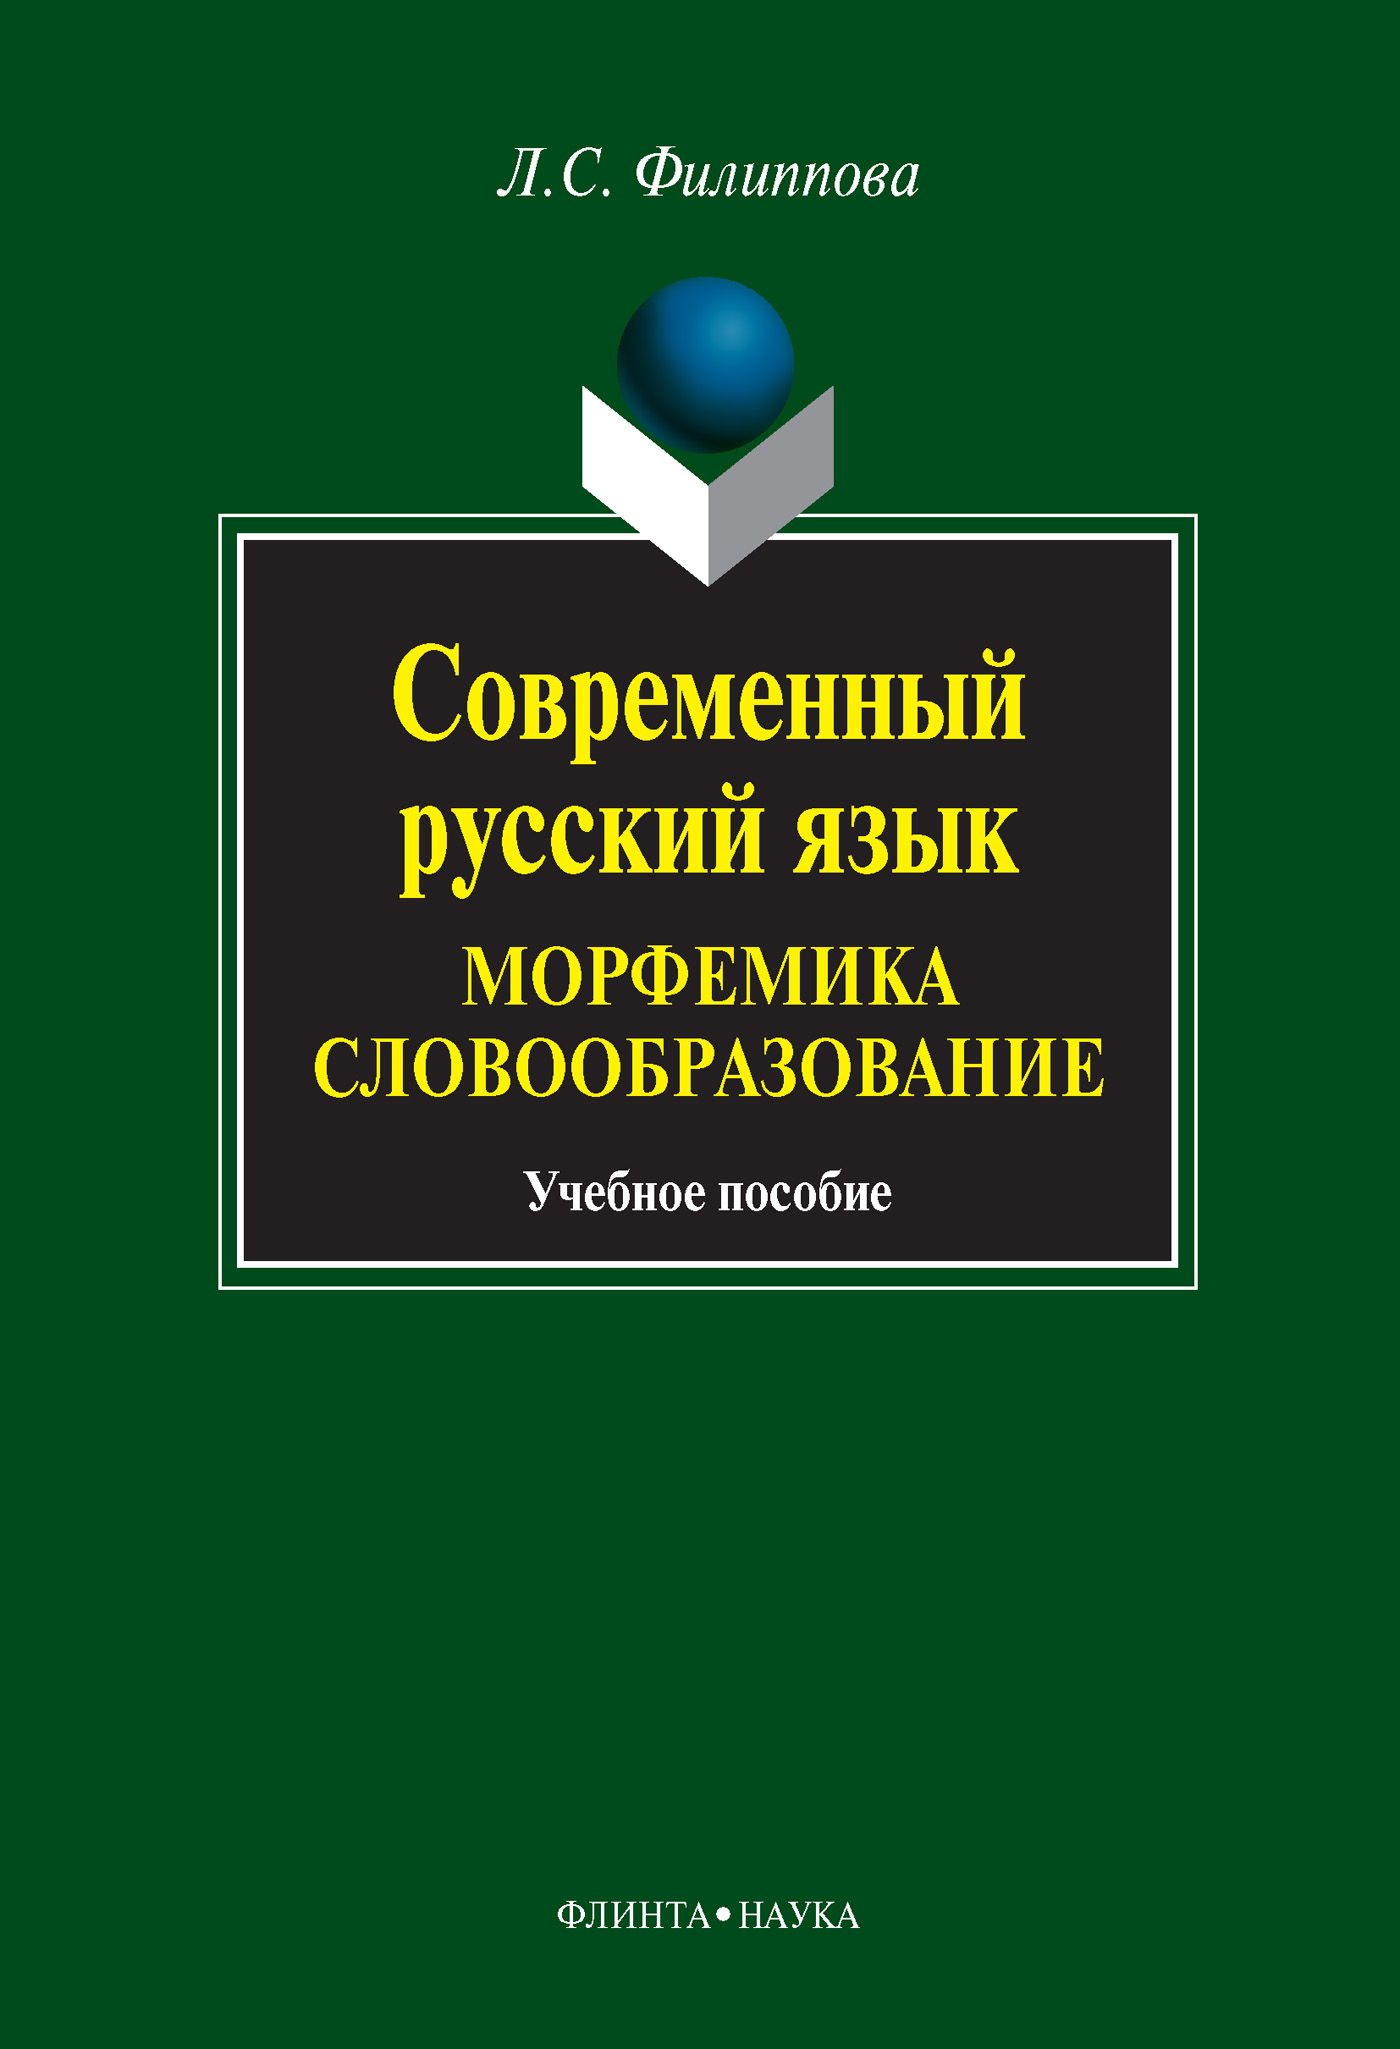 Л. С. Филиппова Современный русский язык. Морфемика. Словообразование. Учебное пособие fineblue f980 retractable mini wireless bluetooth earphones handsfree headset stereo headphone clip mic phone call portable